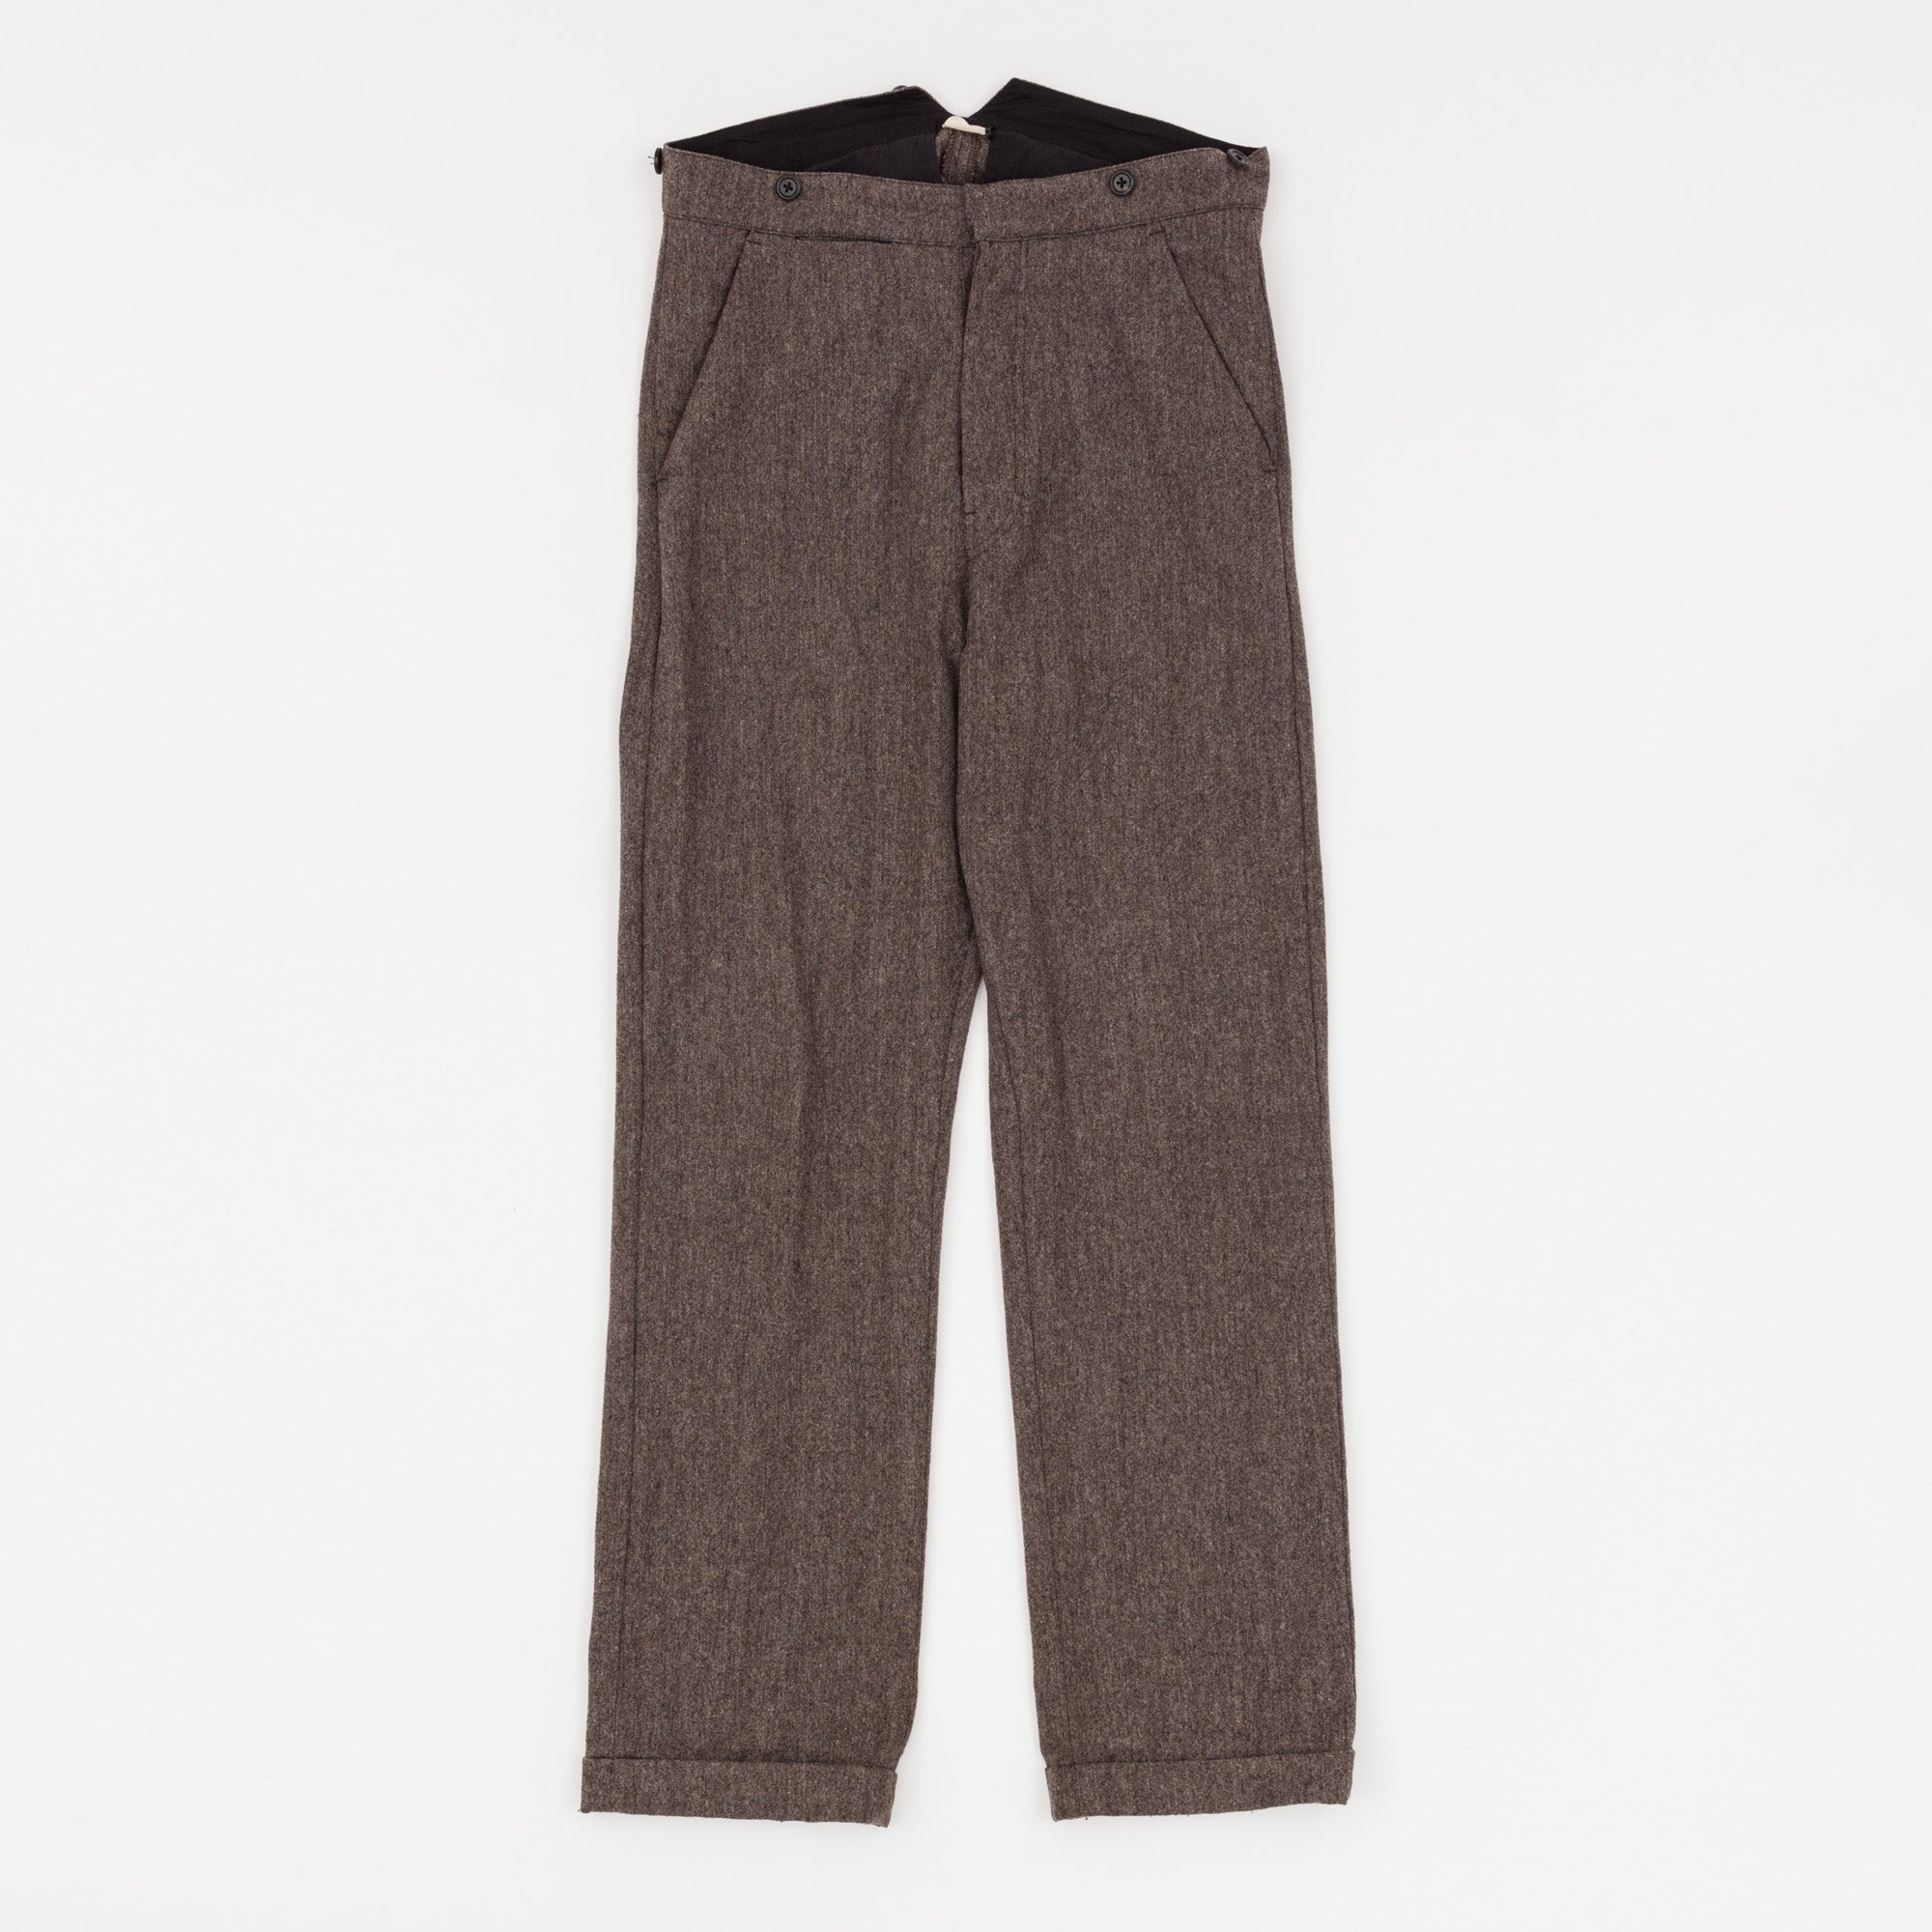 Levi's Vintage Clothing Wool Trousers